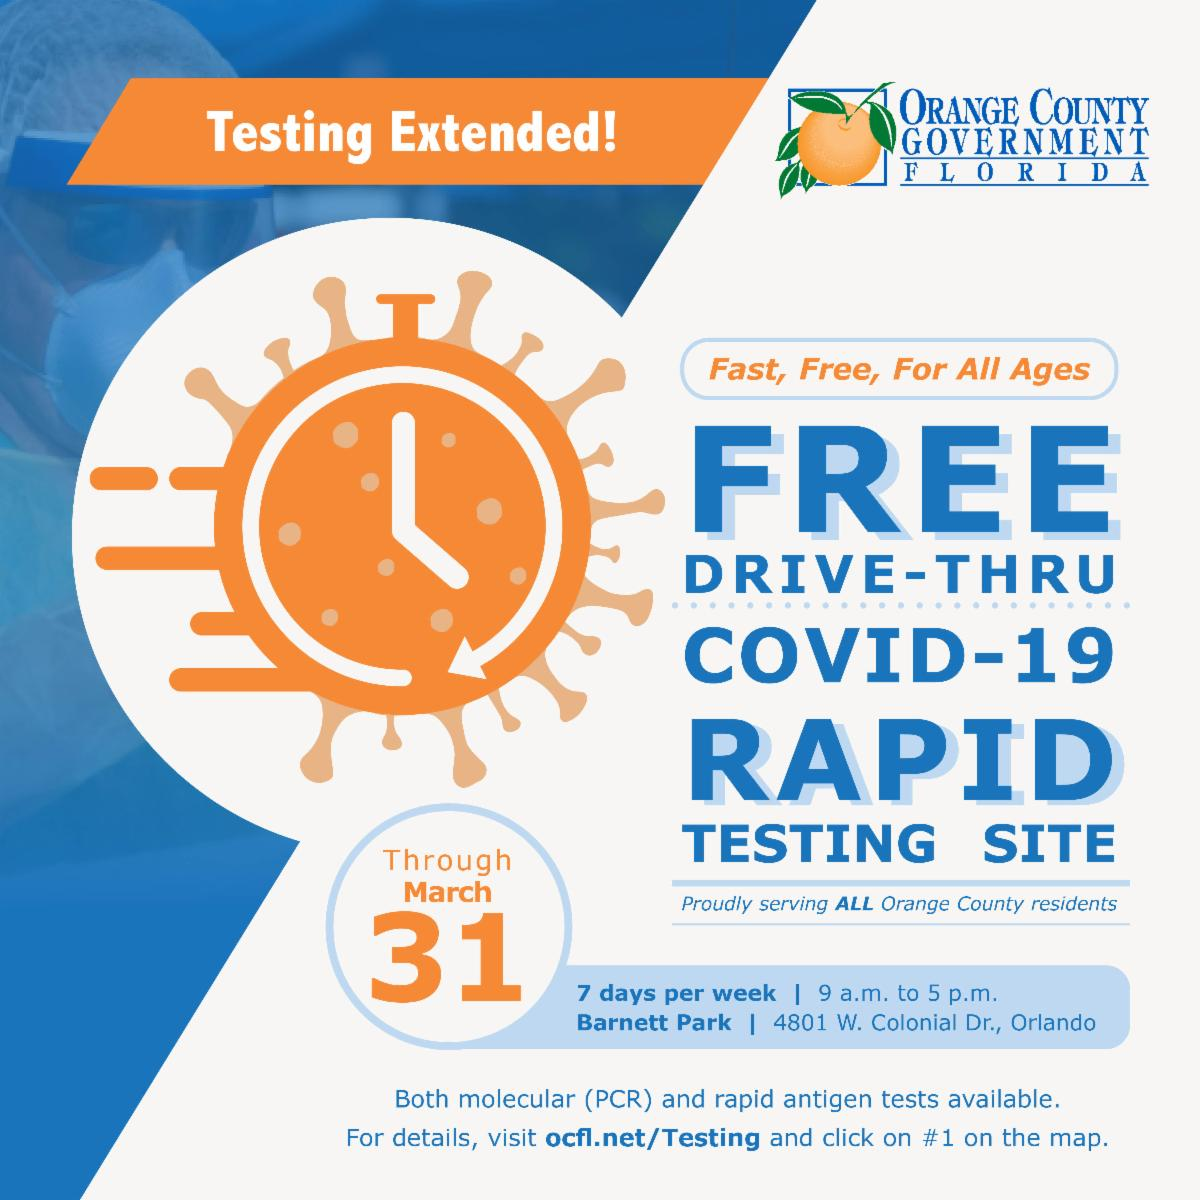 Testing extended through march